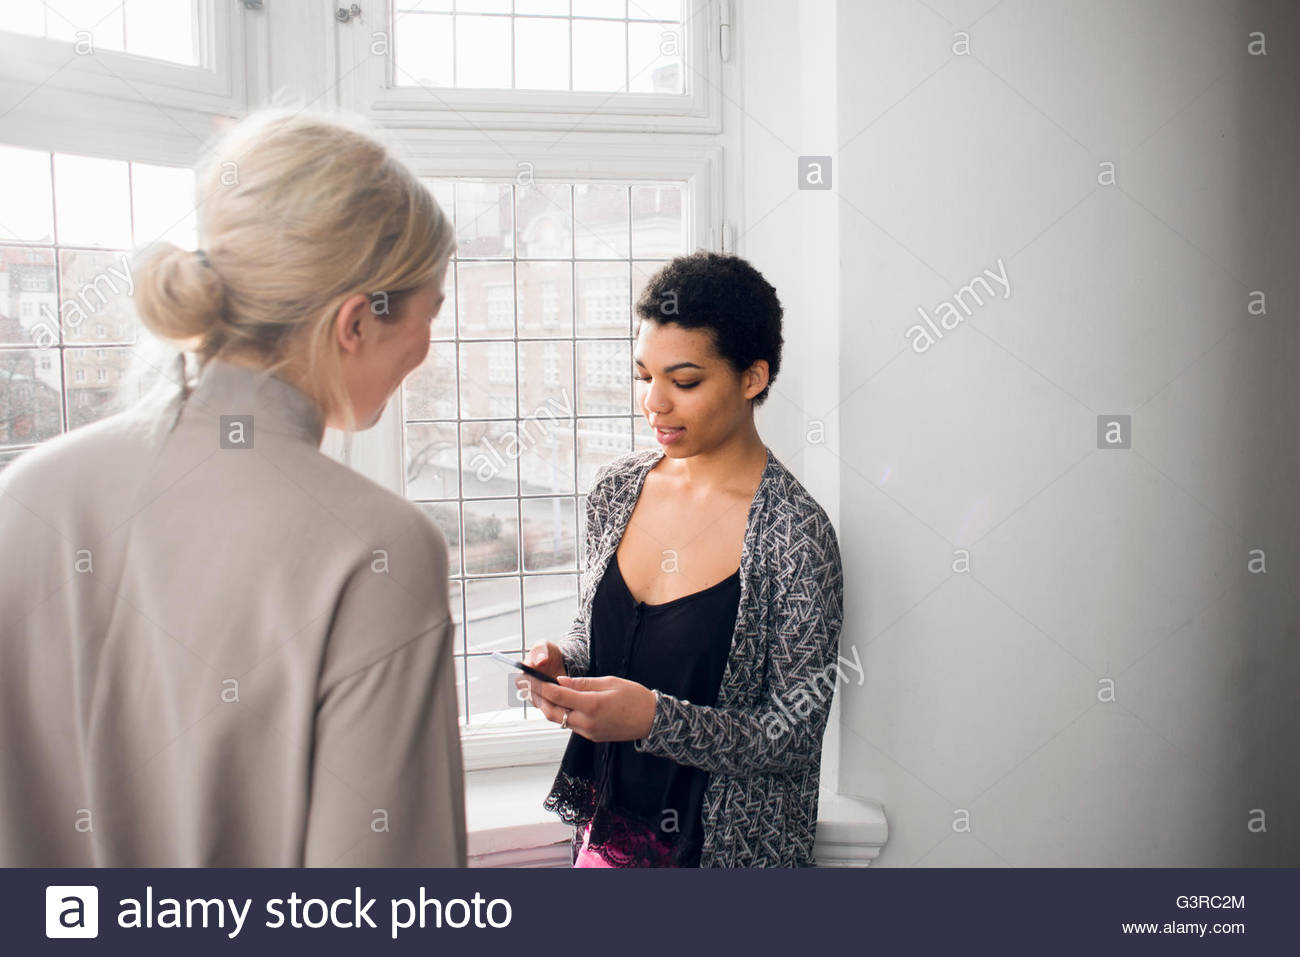 Sweden, Two young women talking - Stock Image